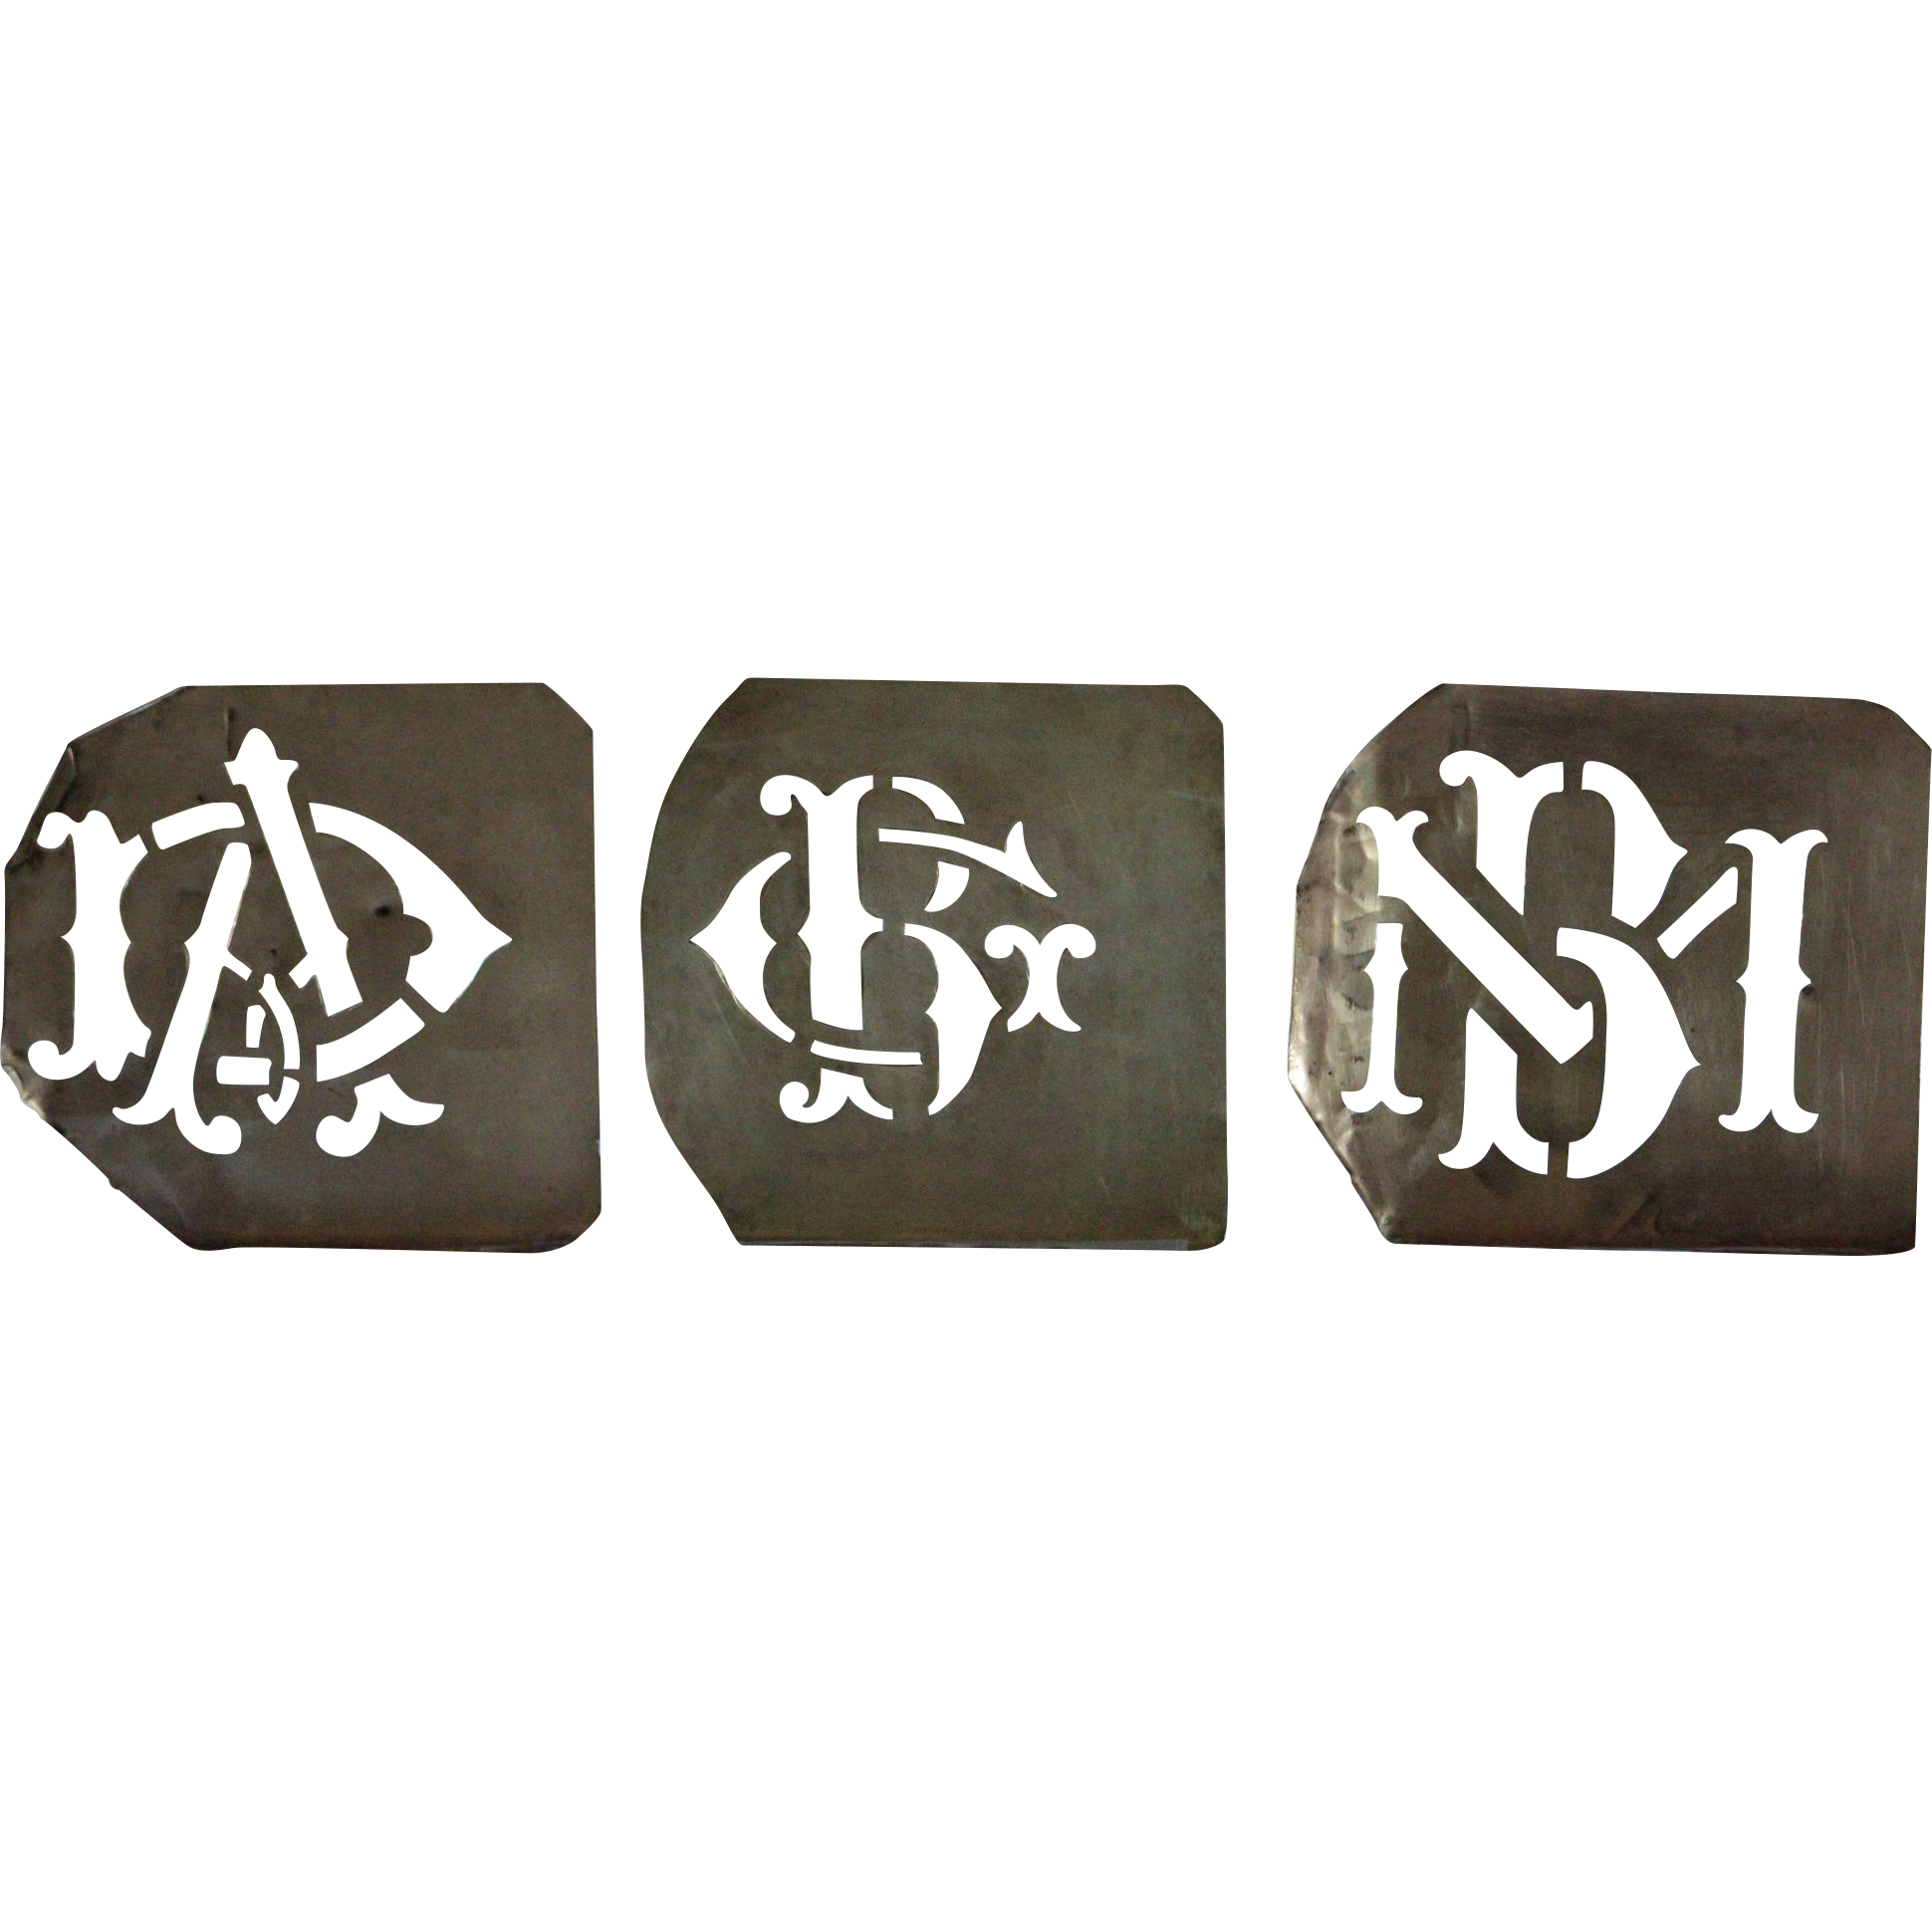 Antique French Monogram Stencils - 19th Century Dowry Sheet Stencil